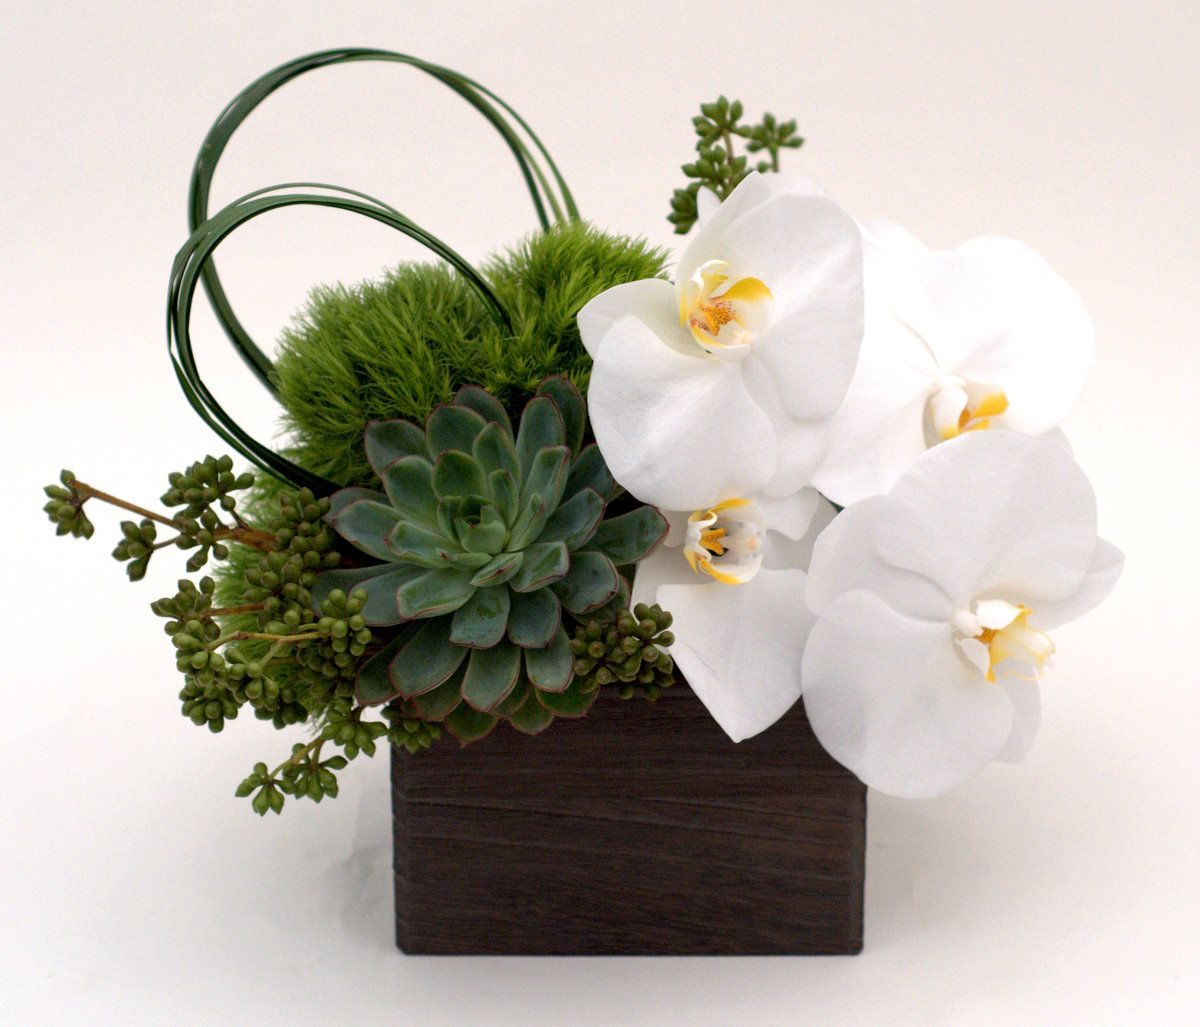 Modernes zen-küchendesign modern flowers online delivered in nyc local florist with delivery